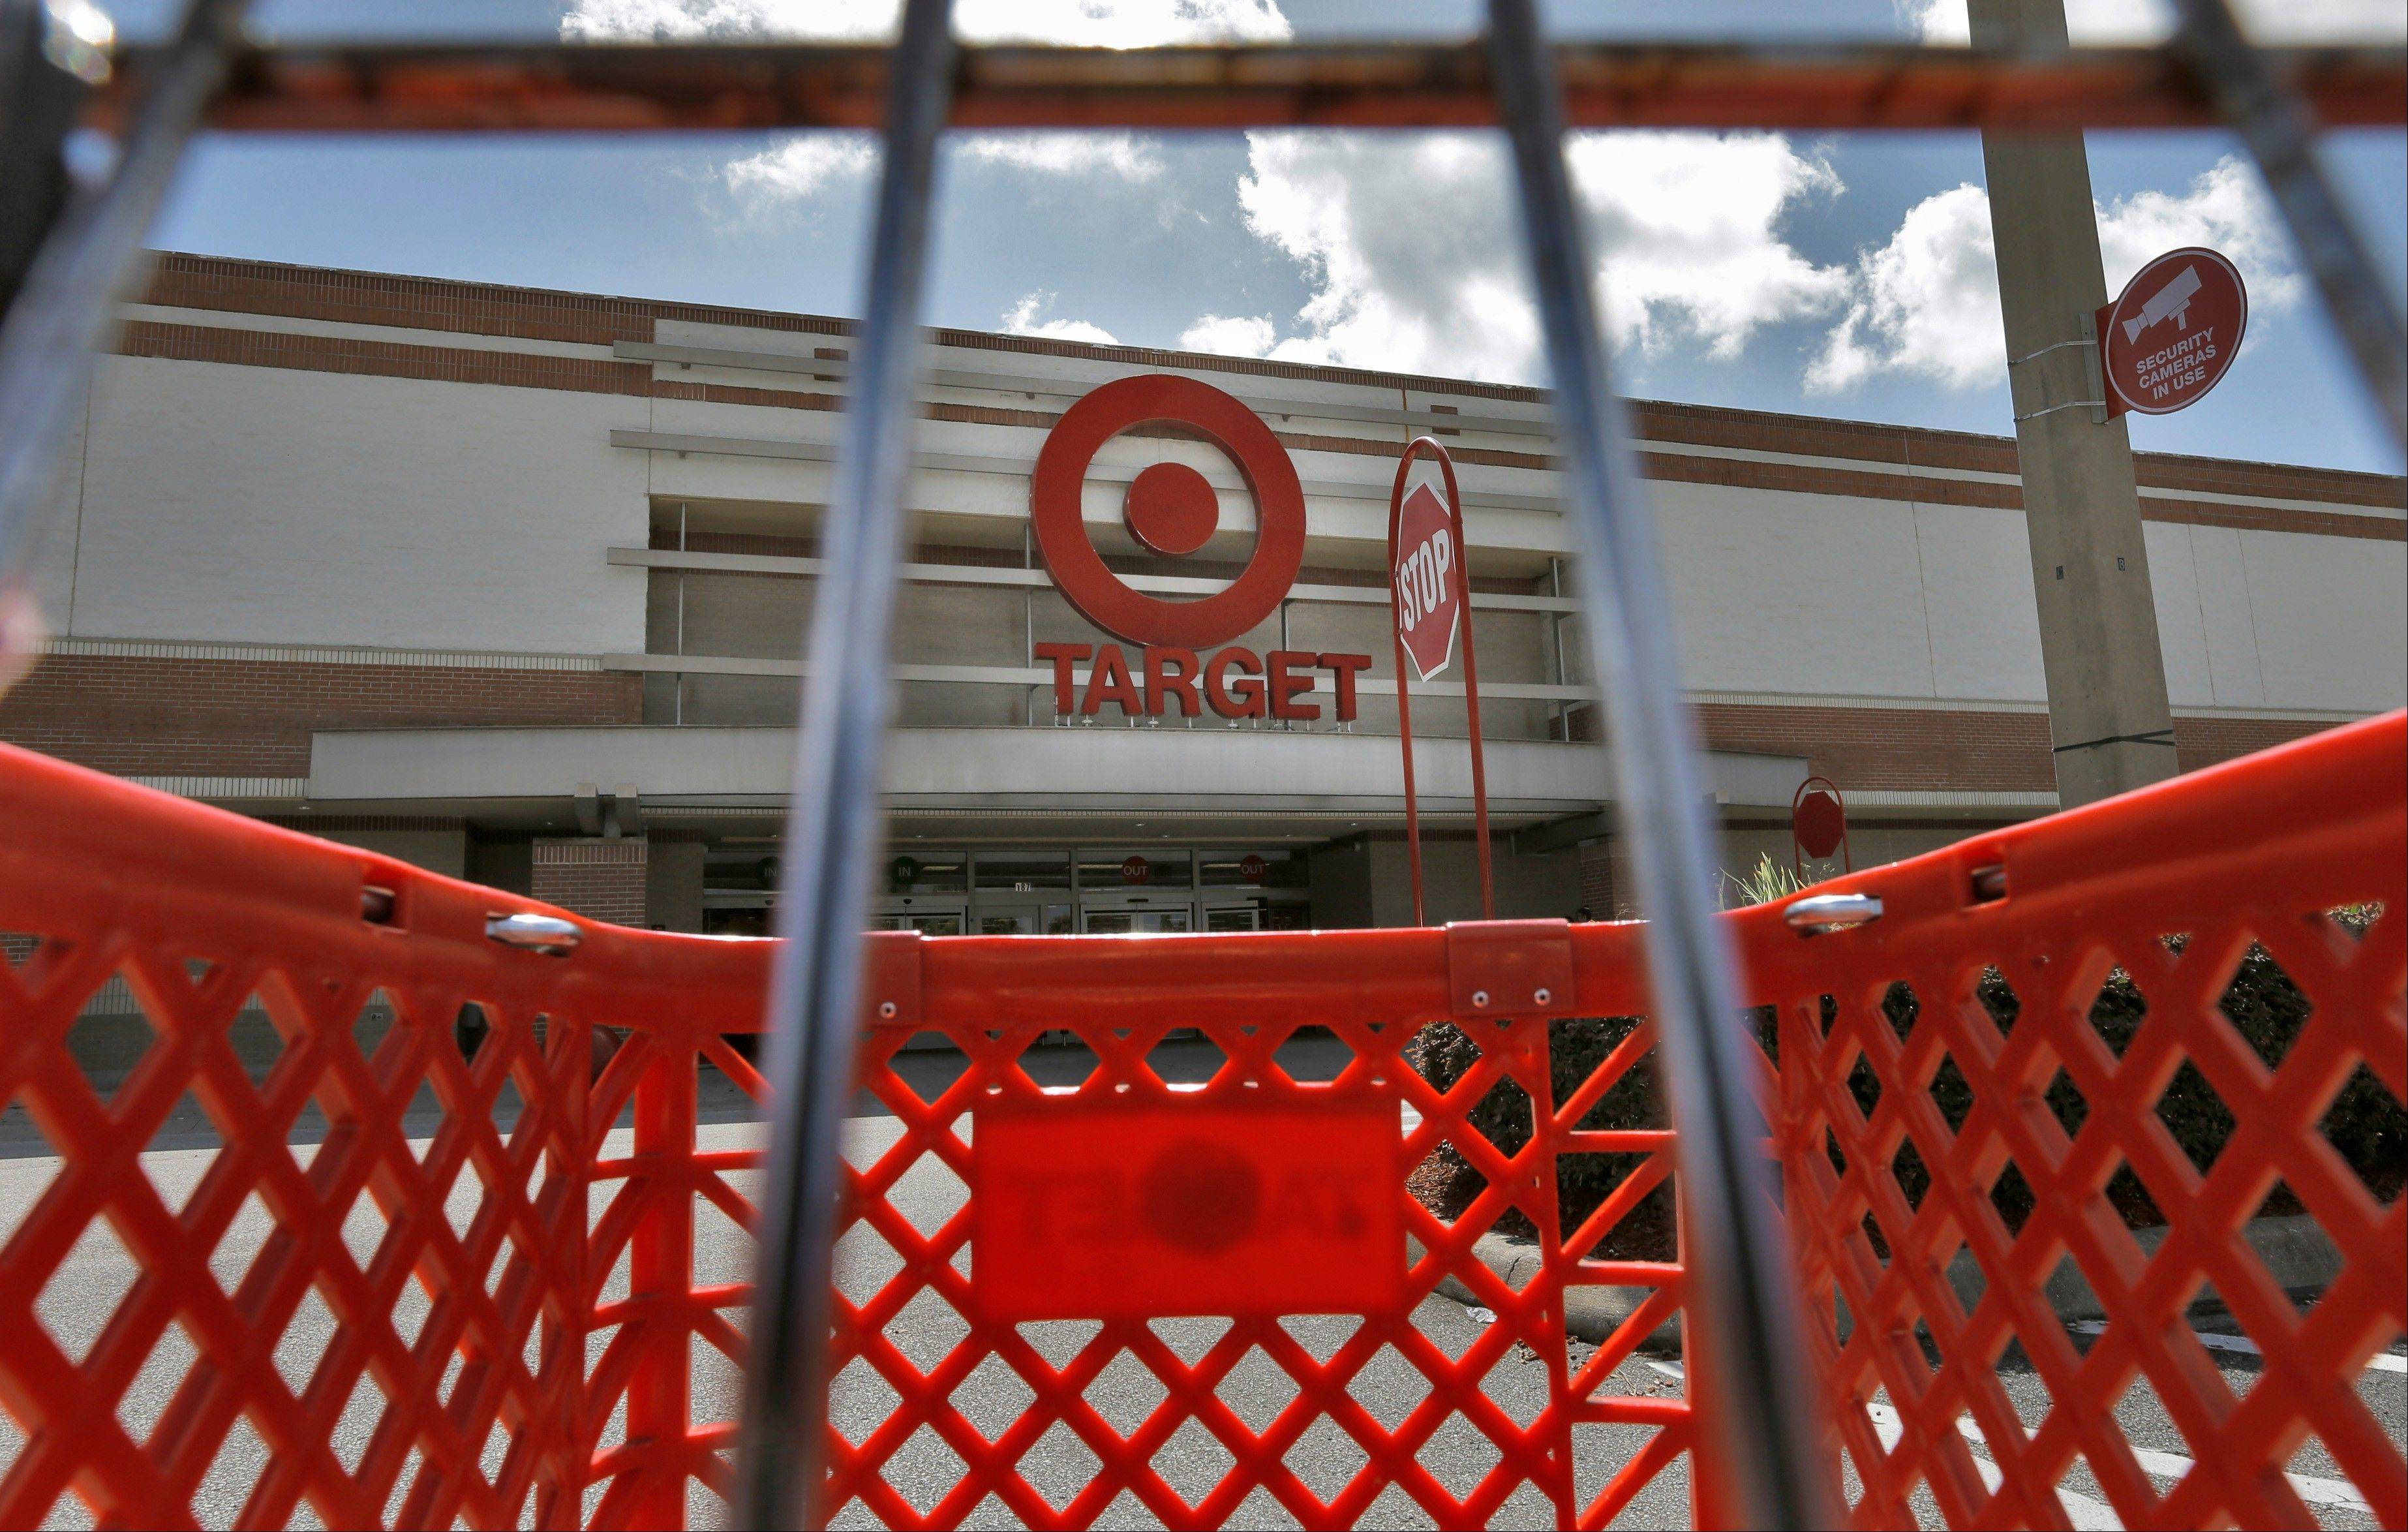 Target's third-quarter net income dropped 47 percent, stung by costs related to its expansion into Canada. The discount store operator's adjusted profit beat analysts' estimates, but revenue fell short.